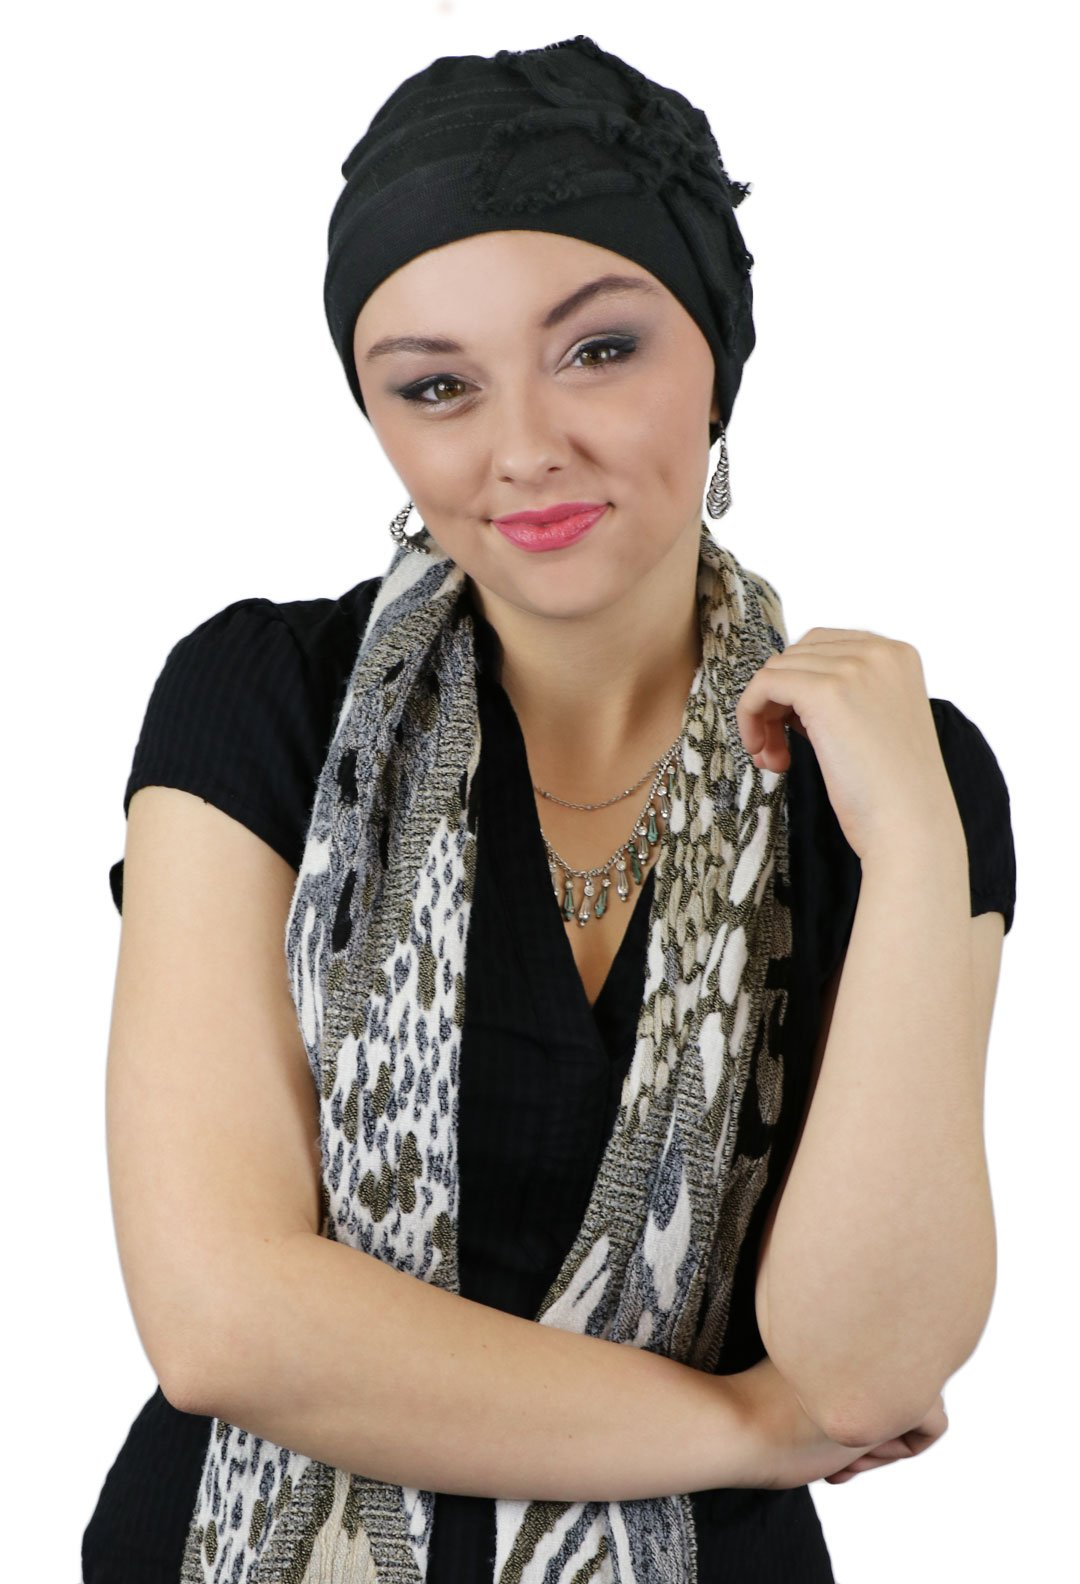 Hats For Cancer Patients Women Chemo Headwear Head Coverings Butterfly Beanie Parkhurst (BLACK) by Hats Scarves & More (Image #2)